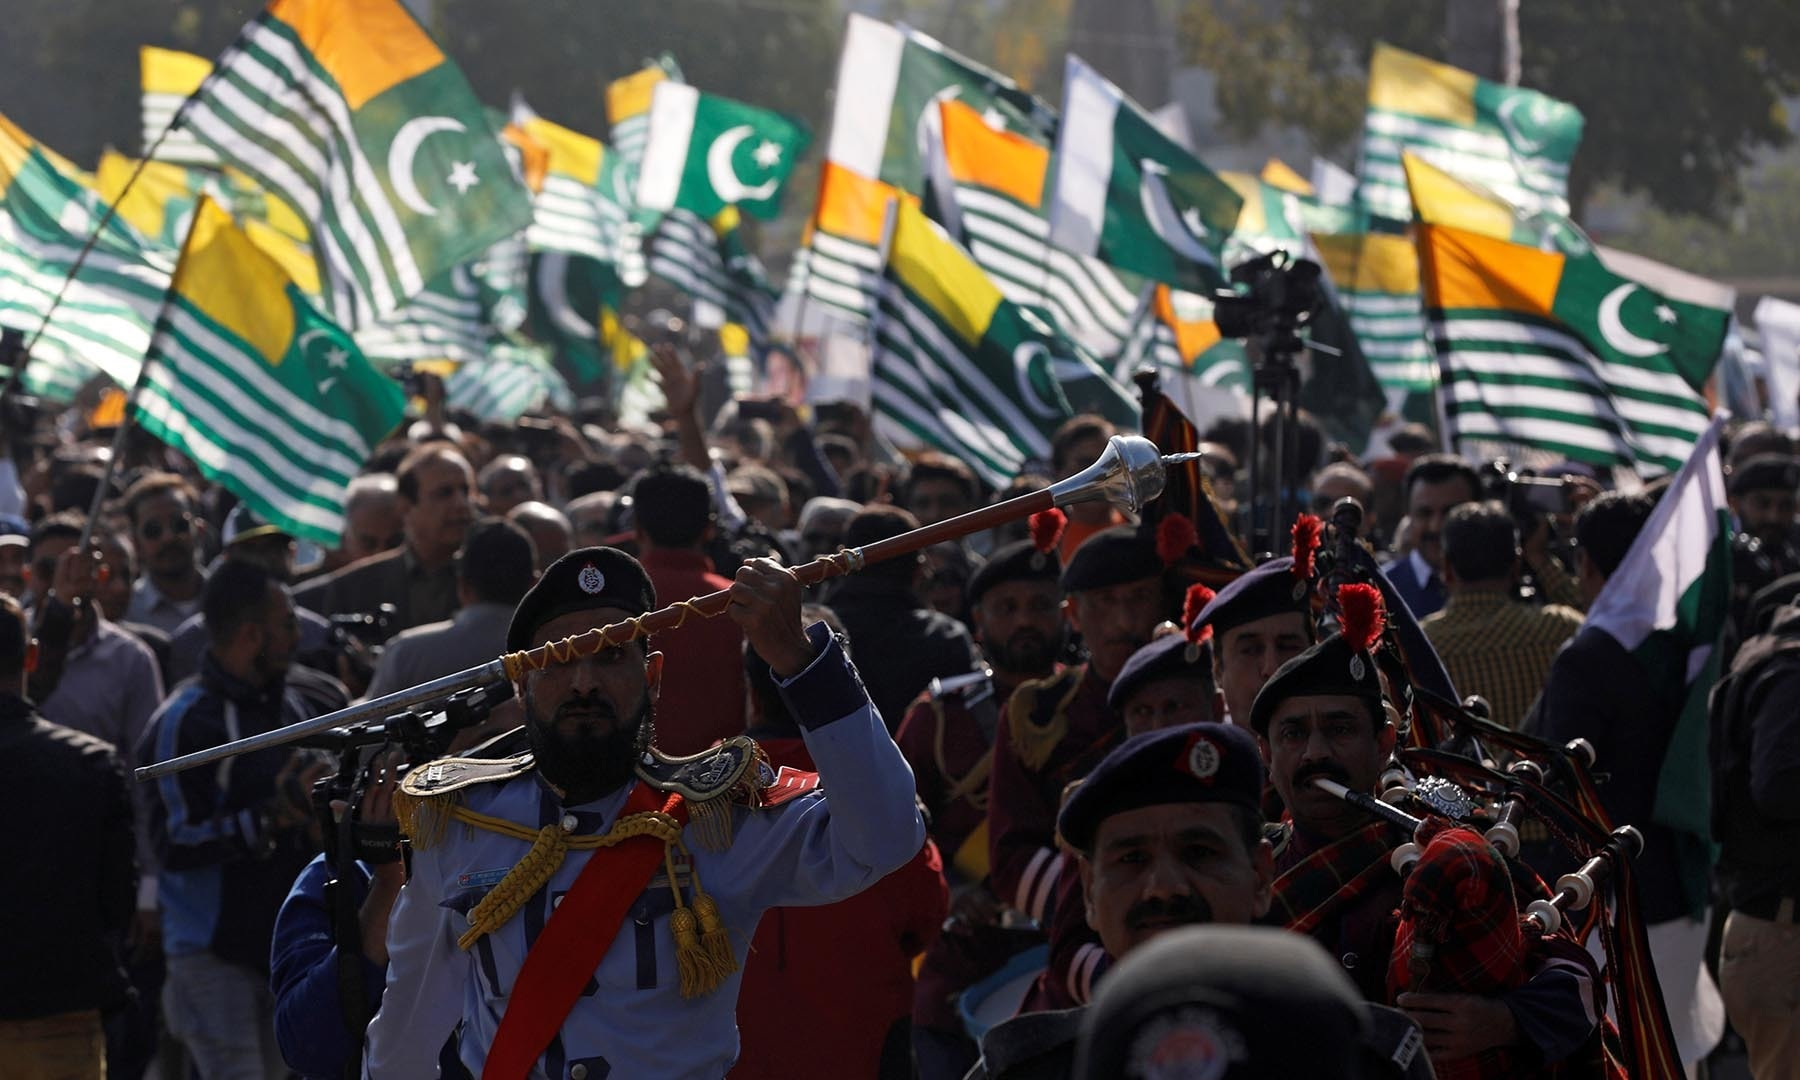 Members of a police band lead a march to mark Kashmir Solidarity Day at the mausoleum of Mohammad Ali Jinnah, in Karachi. — Reuters